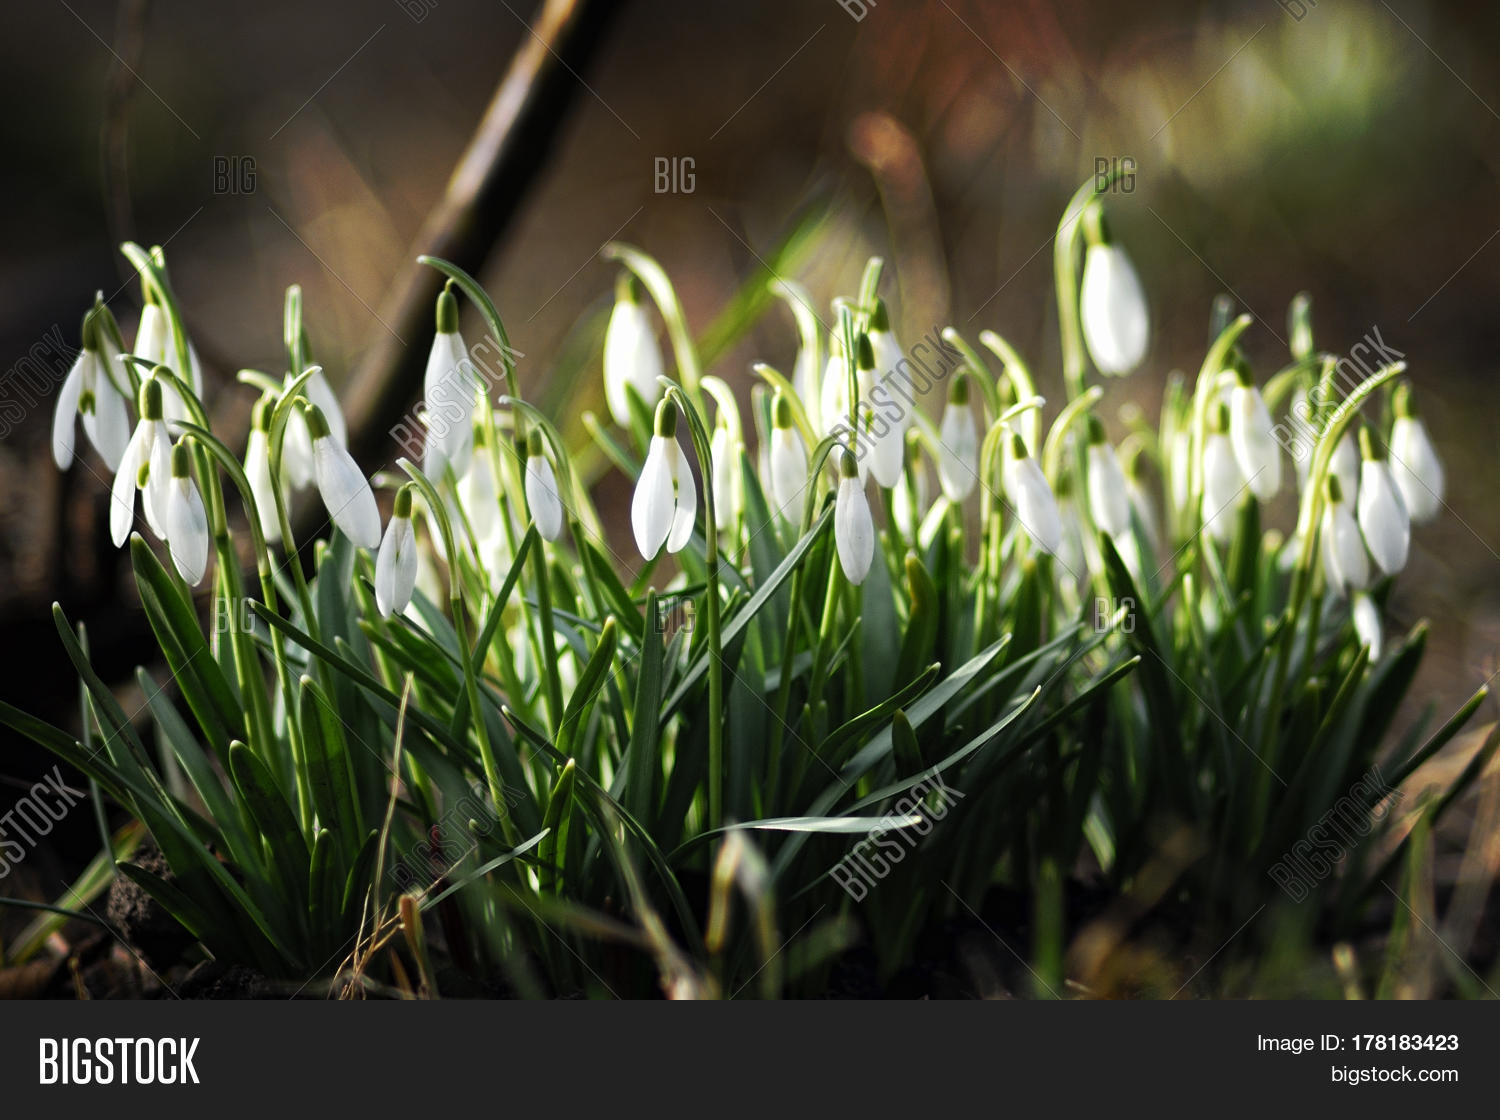 Earliest spring image photo free trial bigstock the earliest spring flowers snowdrops sweethearted nature mightylinksfo